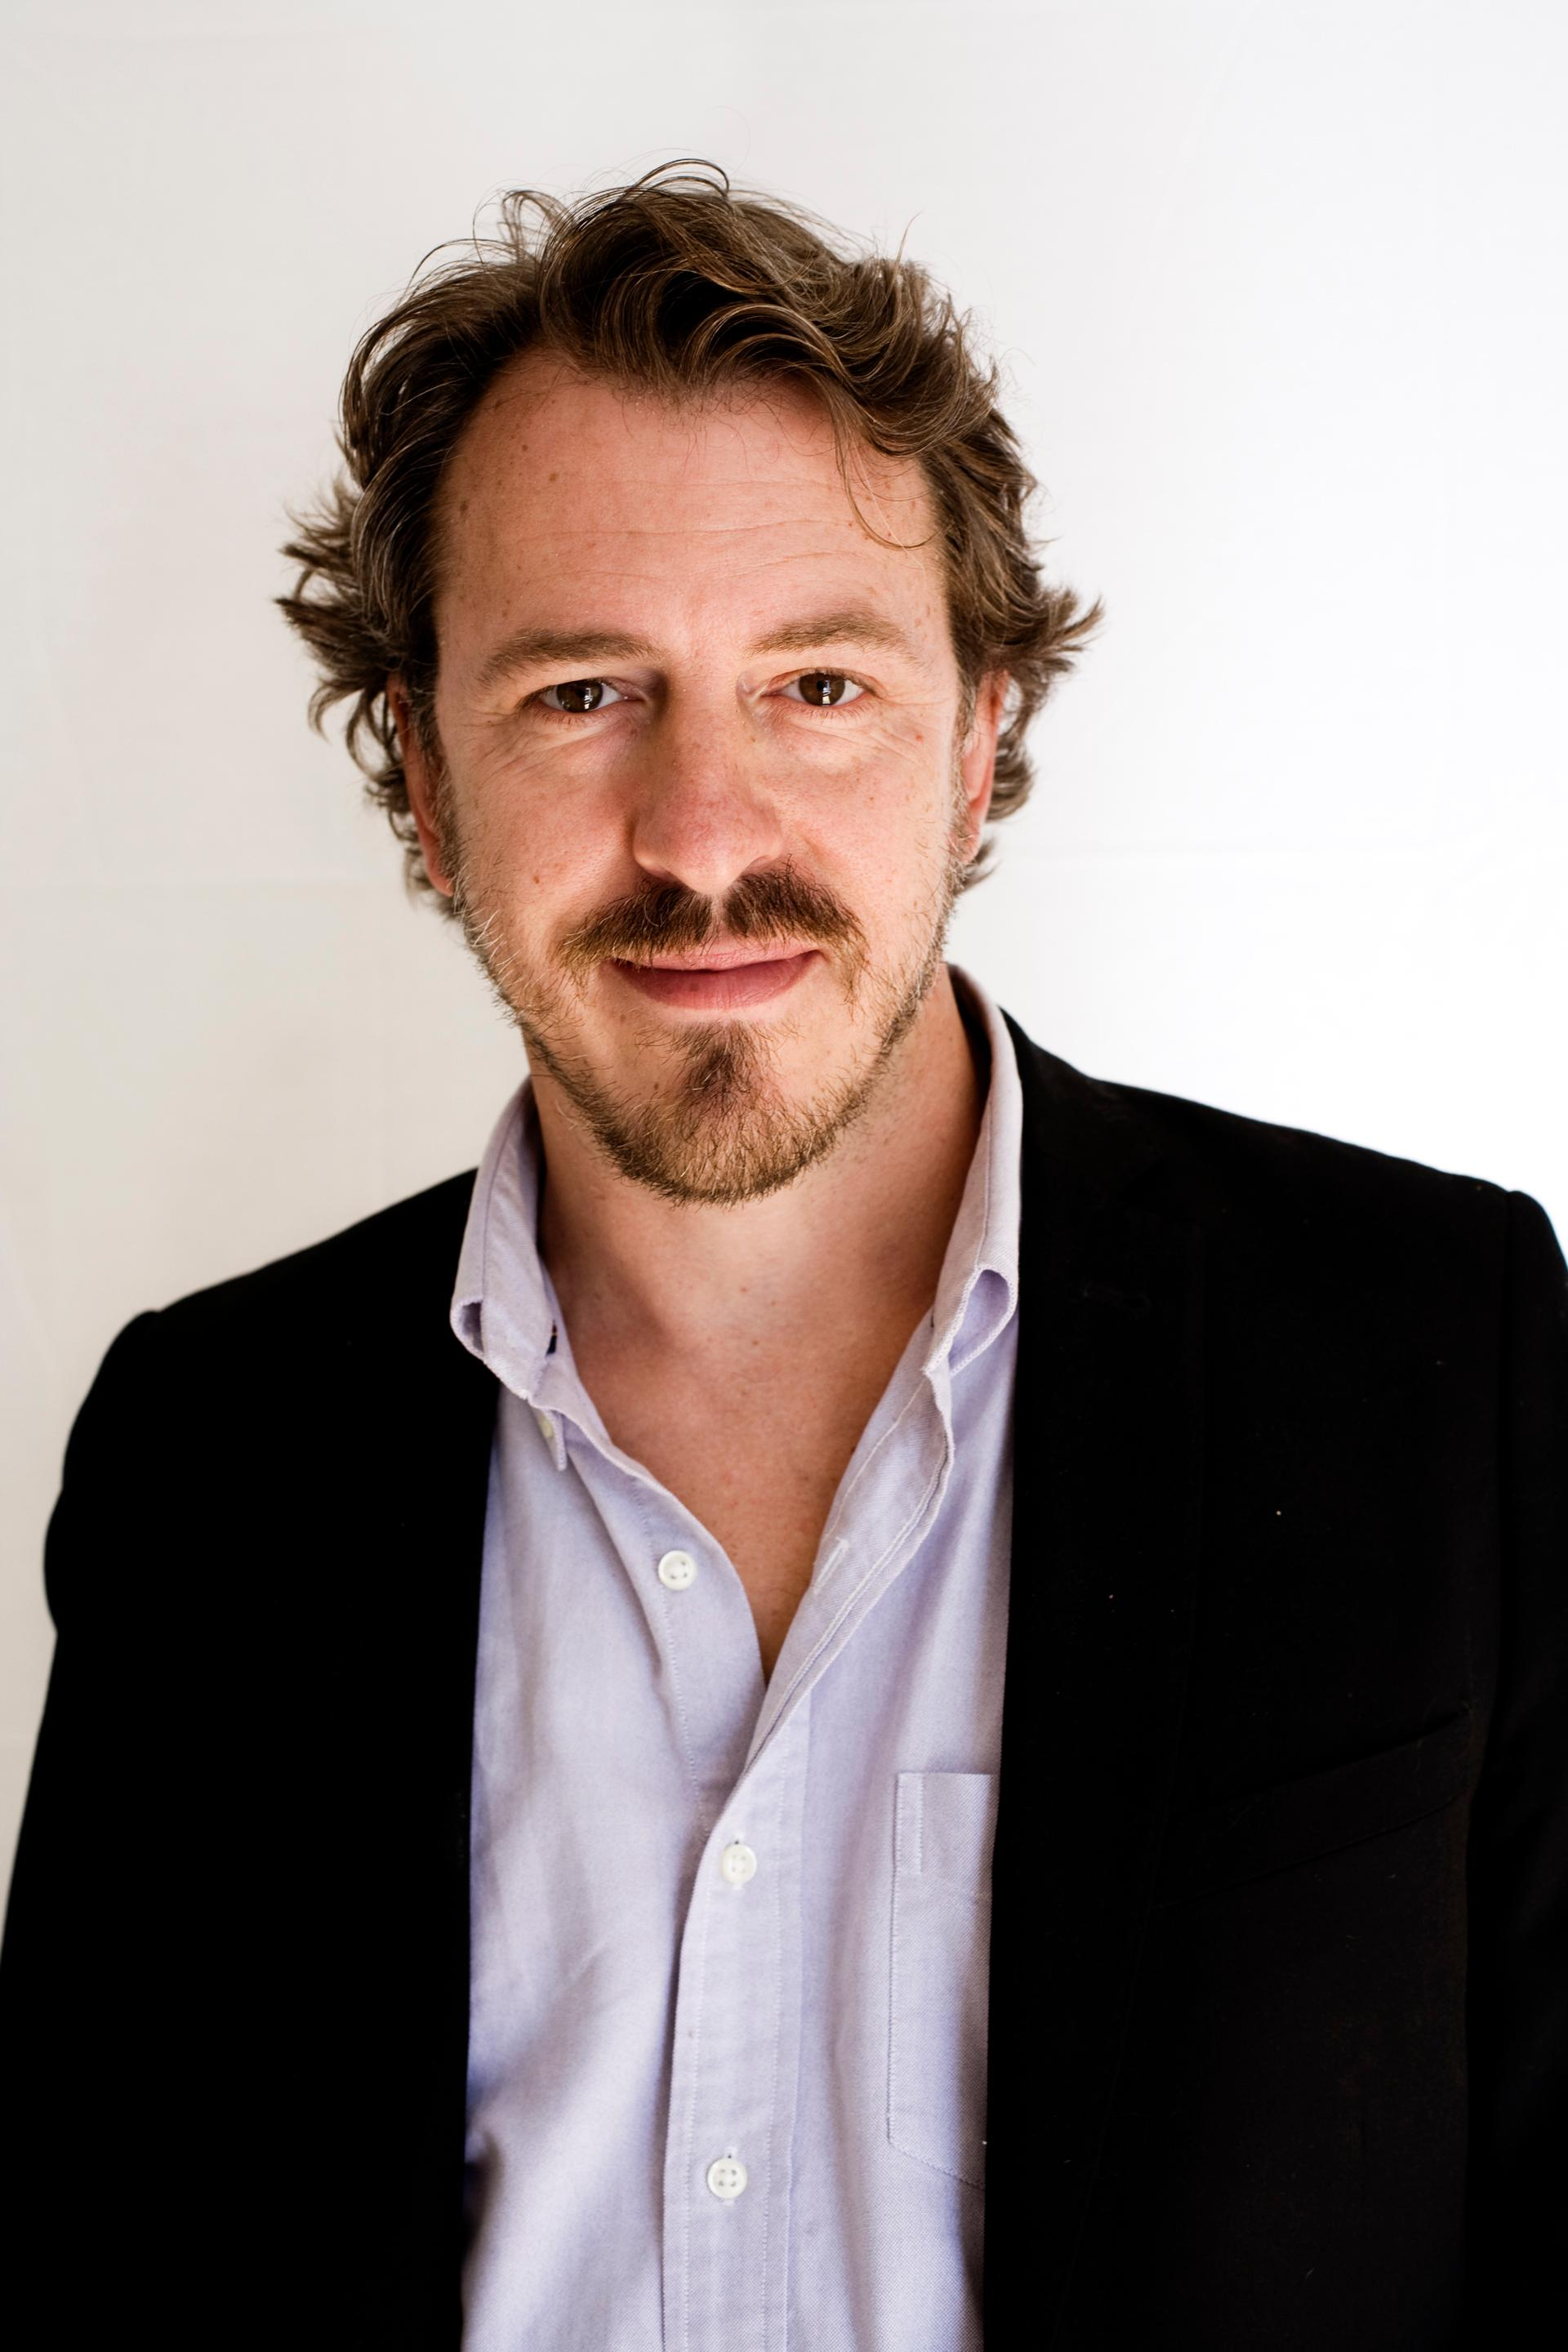 Internationally Renowned Environmentalist 'No Impact Man' Colin Beavan Is Coming To Budapest